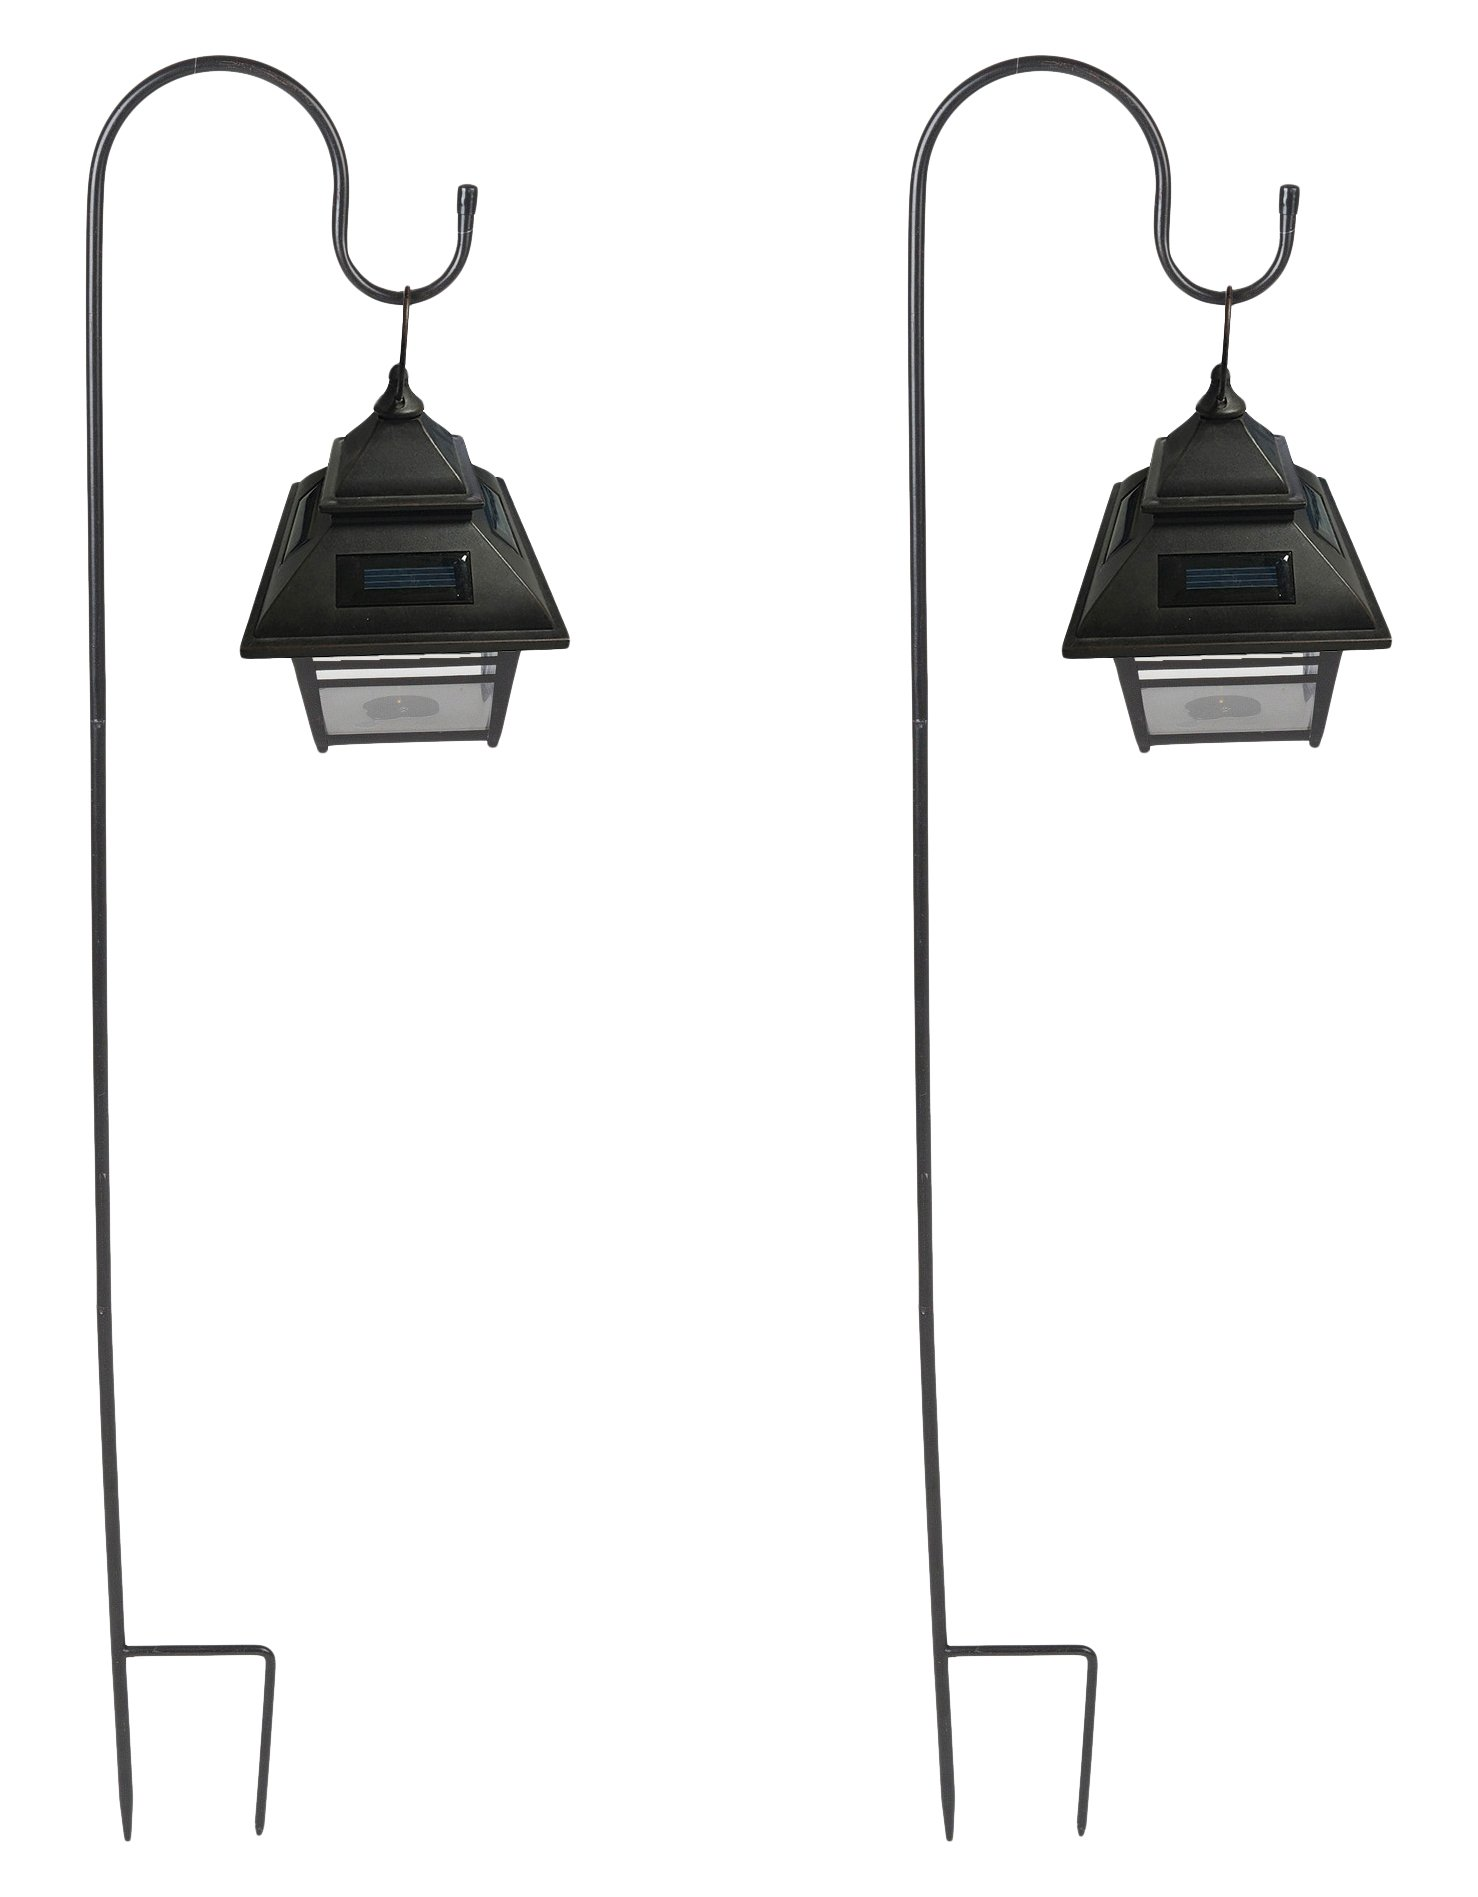 Set of 2 Small Hanging Solar Lanterns with Shepherd's Hooks